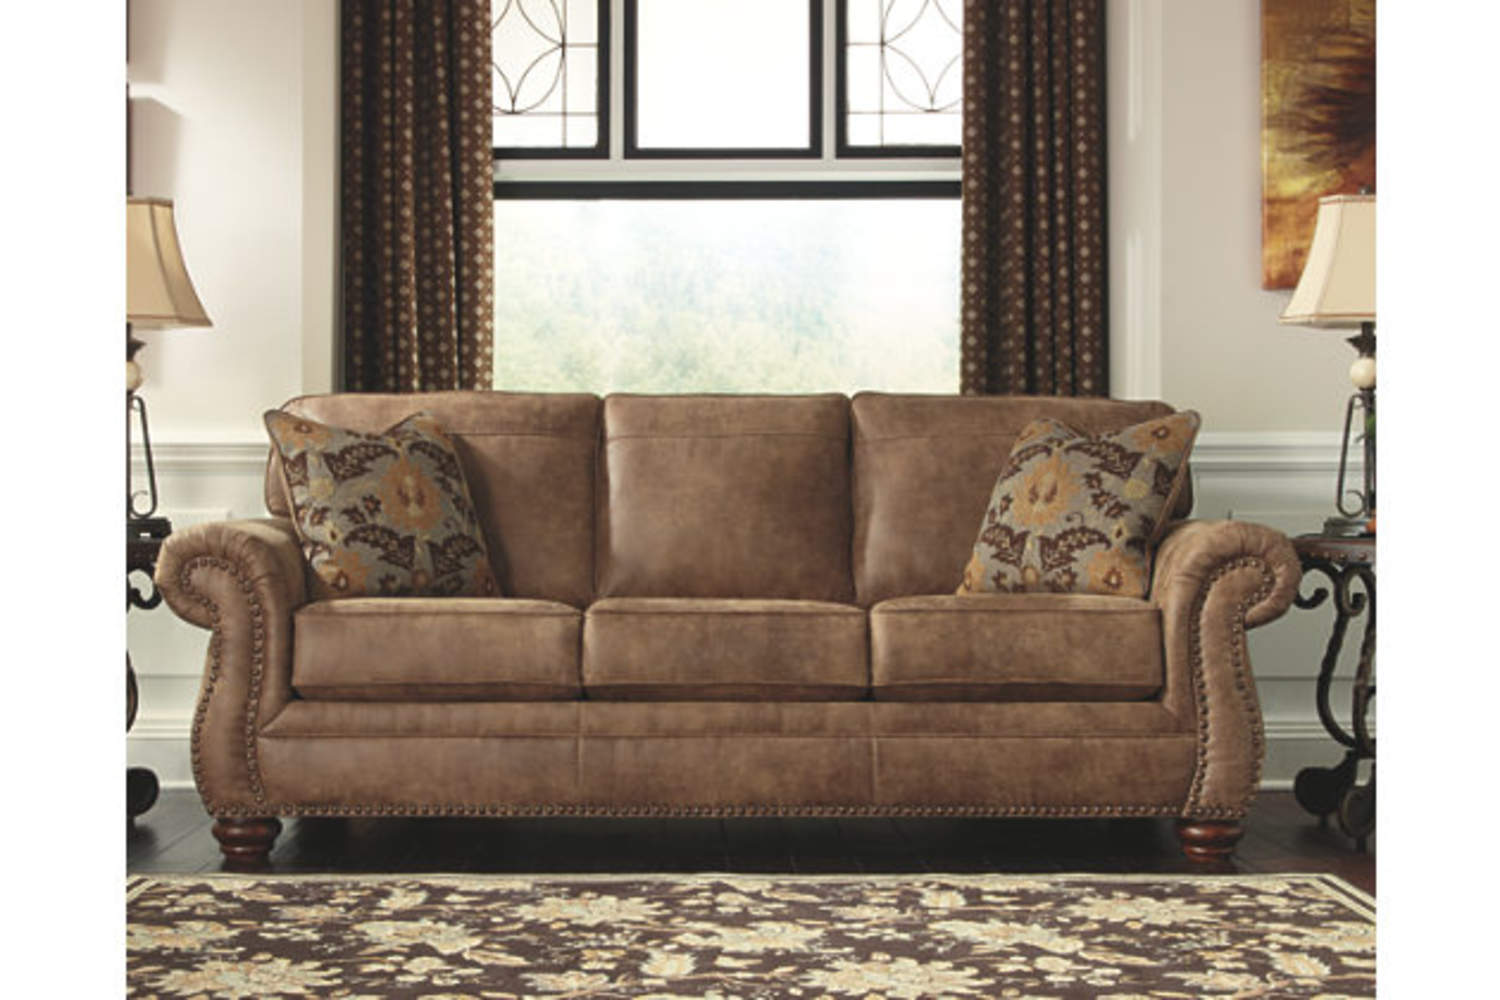 Signature Design By Ashley 3190138 Earth Colored Larkinhurst Sofa At Sutherlands